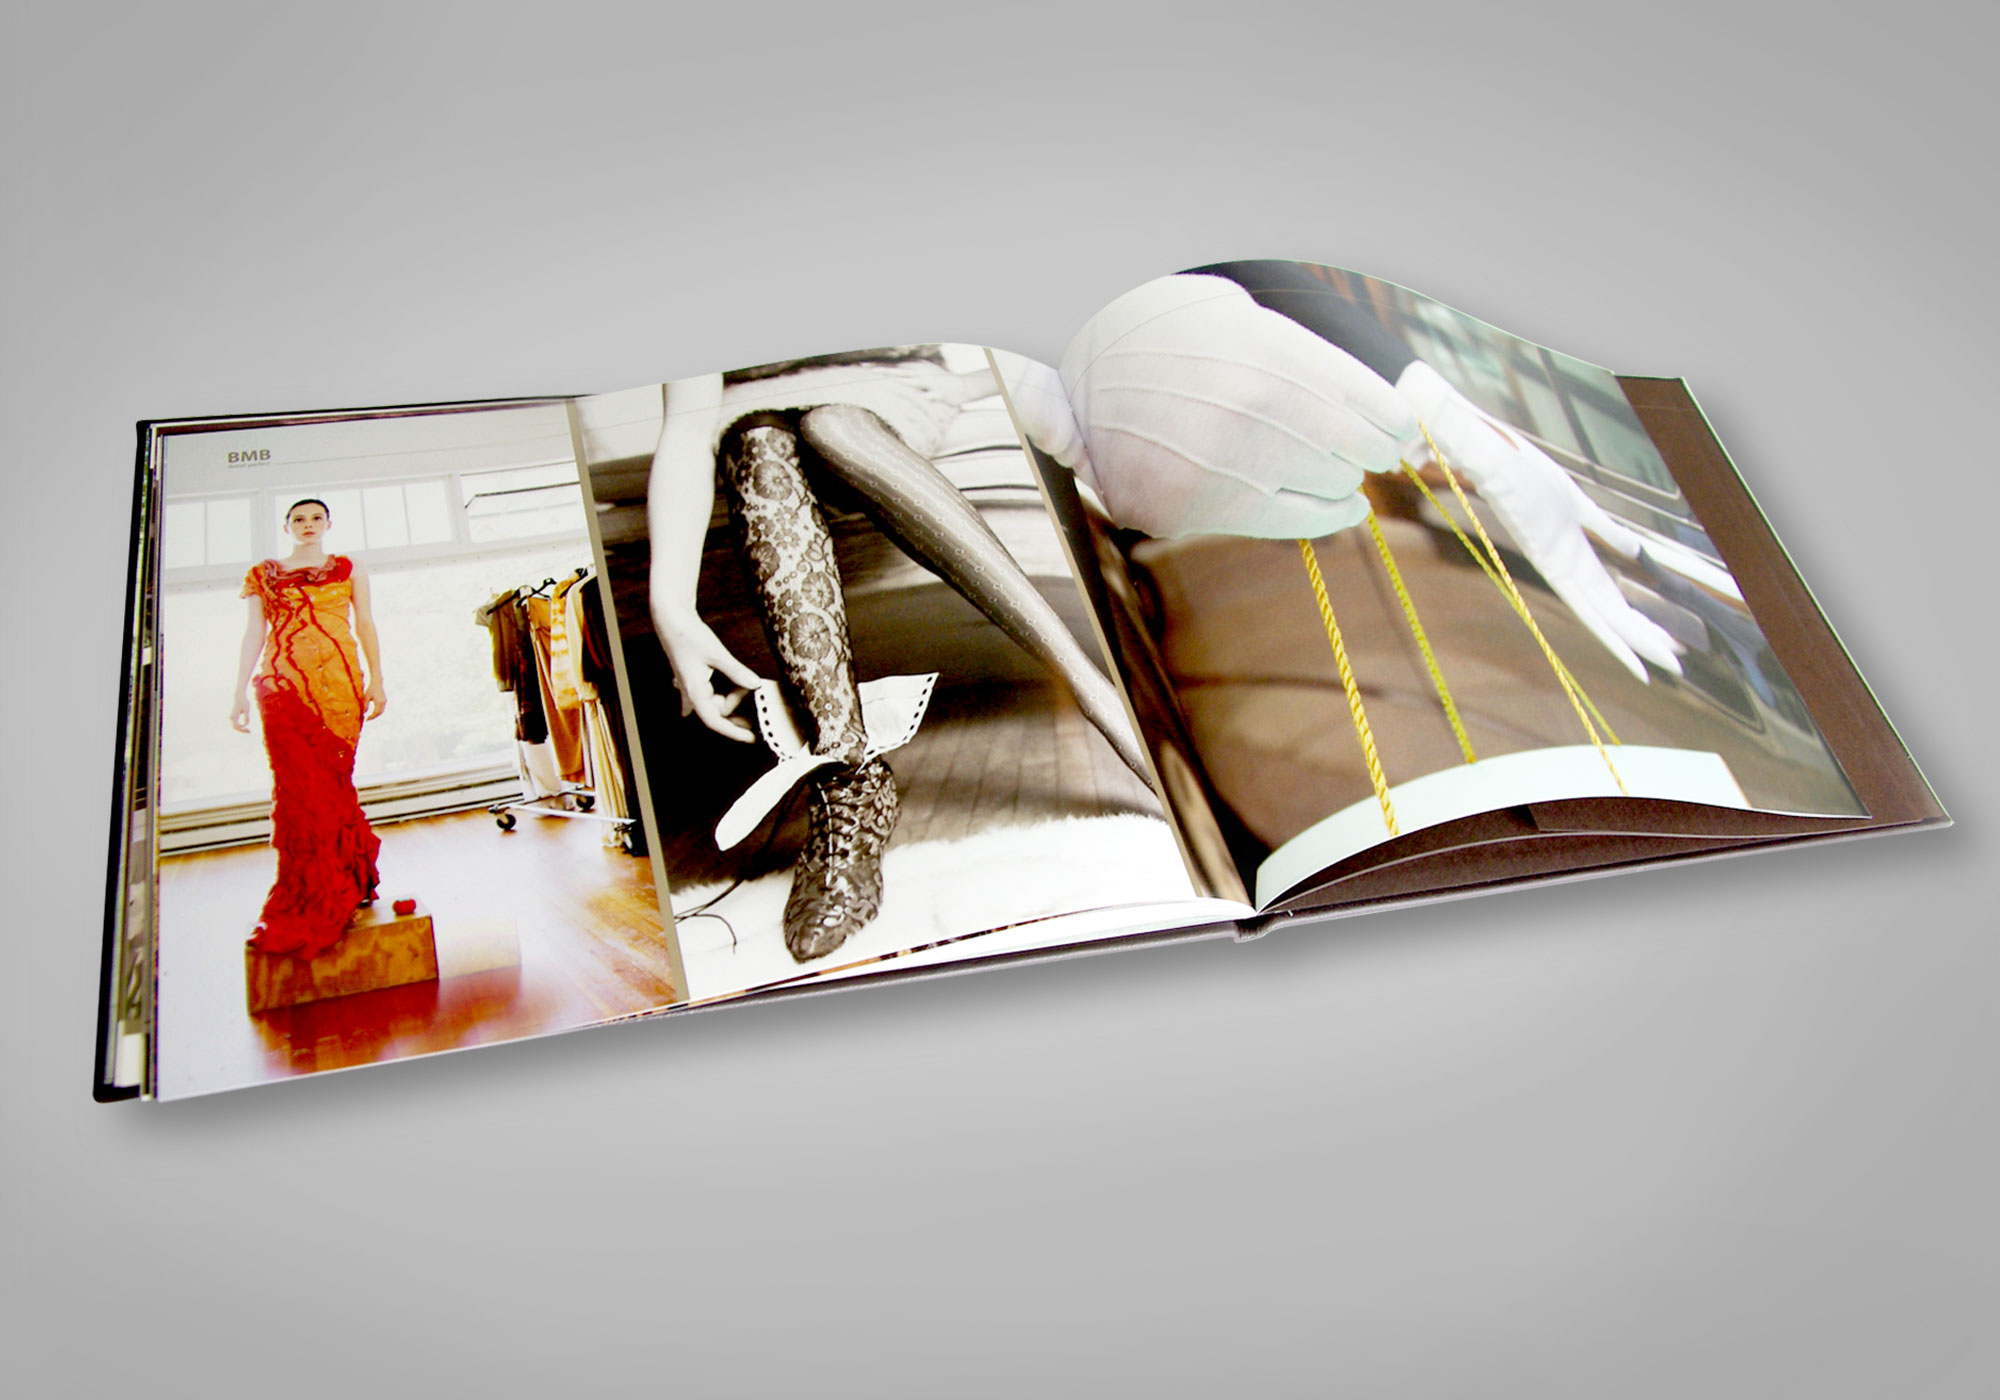 Bon Coffee Table Book Design With Lifestyle Photography. Luxury Boutique Design  Company So Creative Worked With Hand Bookbinders And Custom Craftsmen.